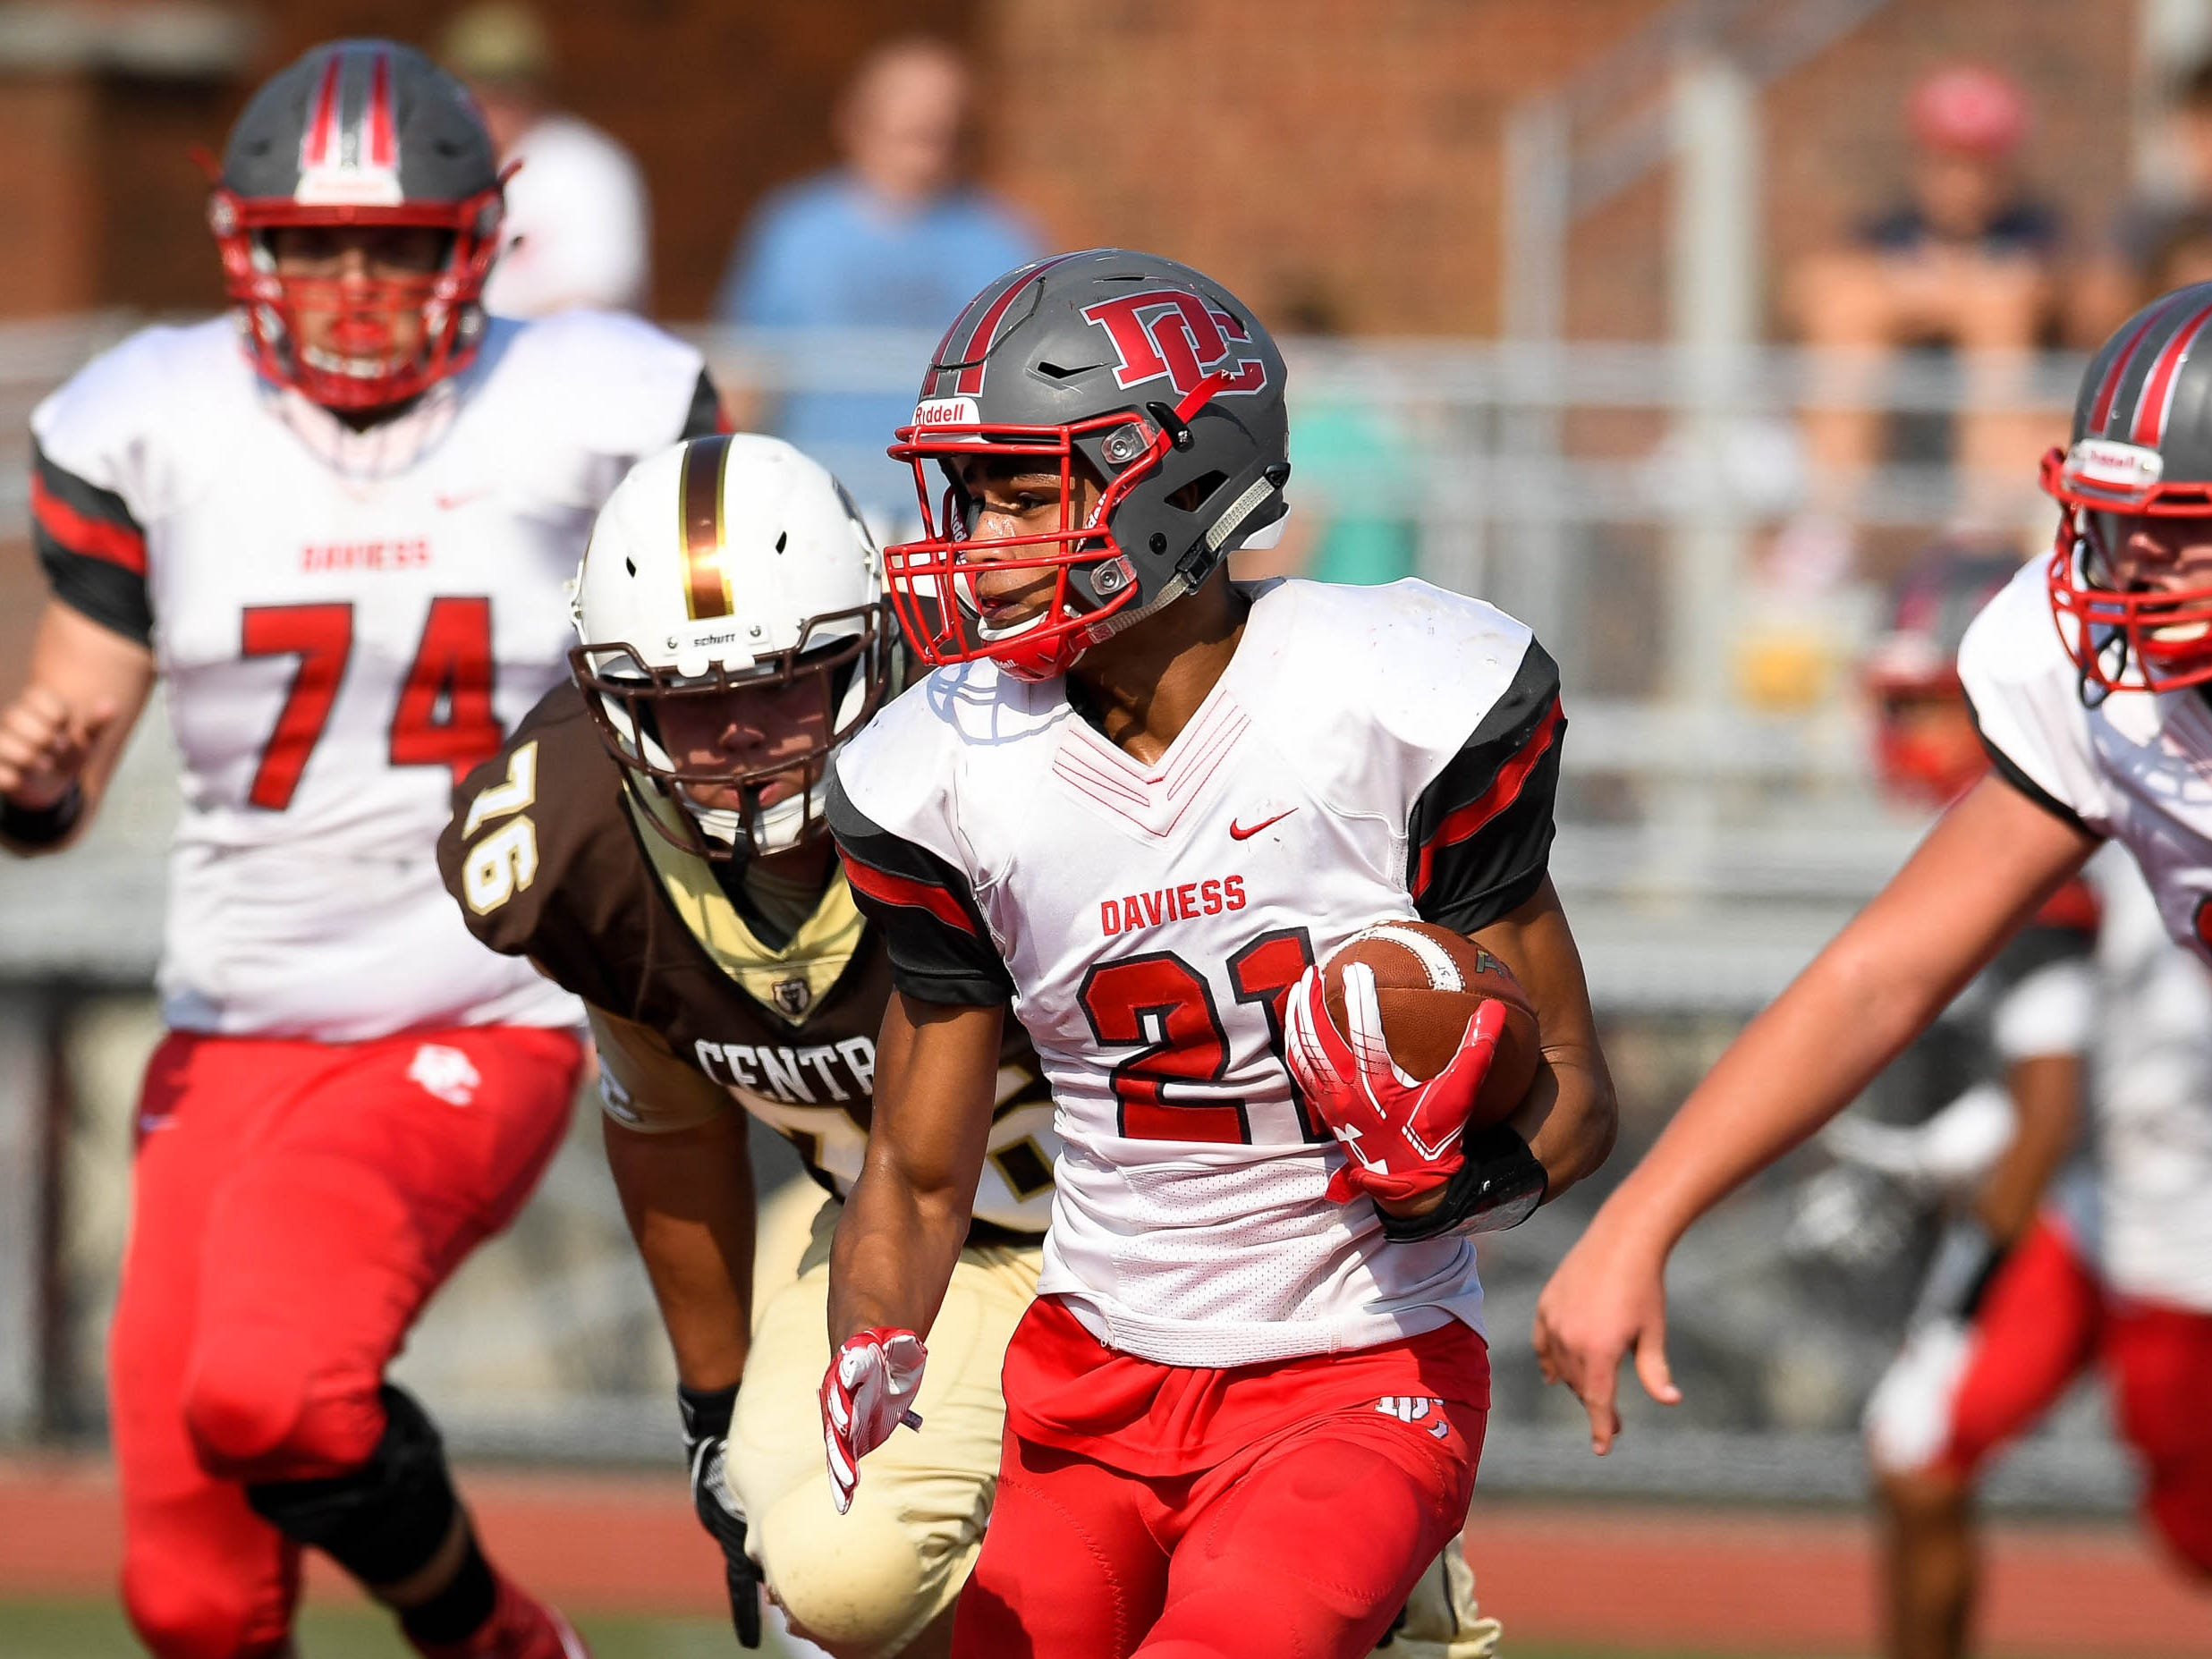 Daviess County's Jax Simpson (21) looks for running room as the Daviess County Panthers play the Evansville Central Bears at the Border Bowl played at Enlow Field in Evansville Saturday, August 25, 2018.